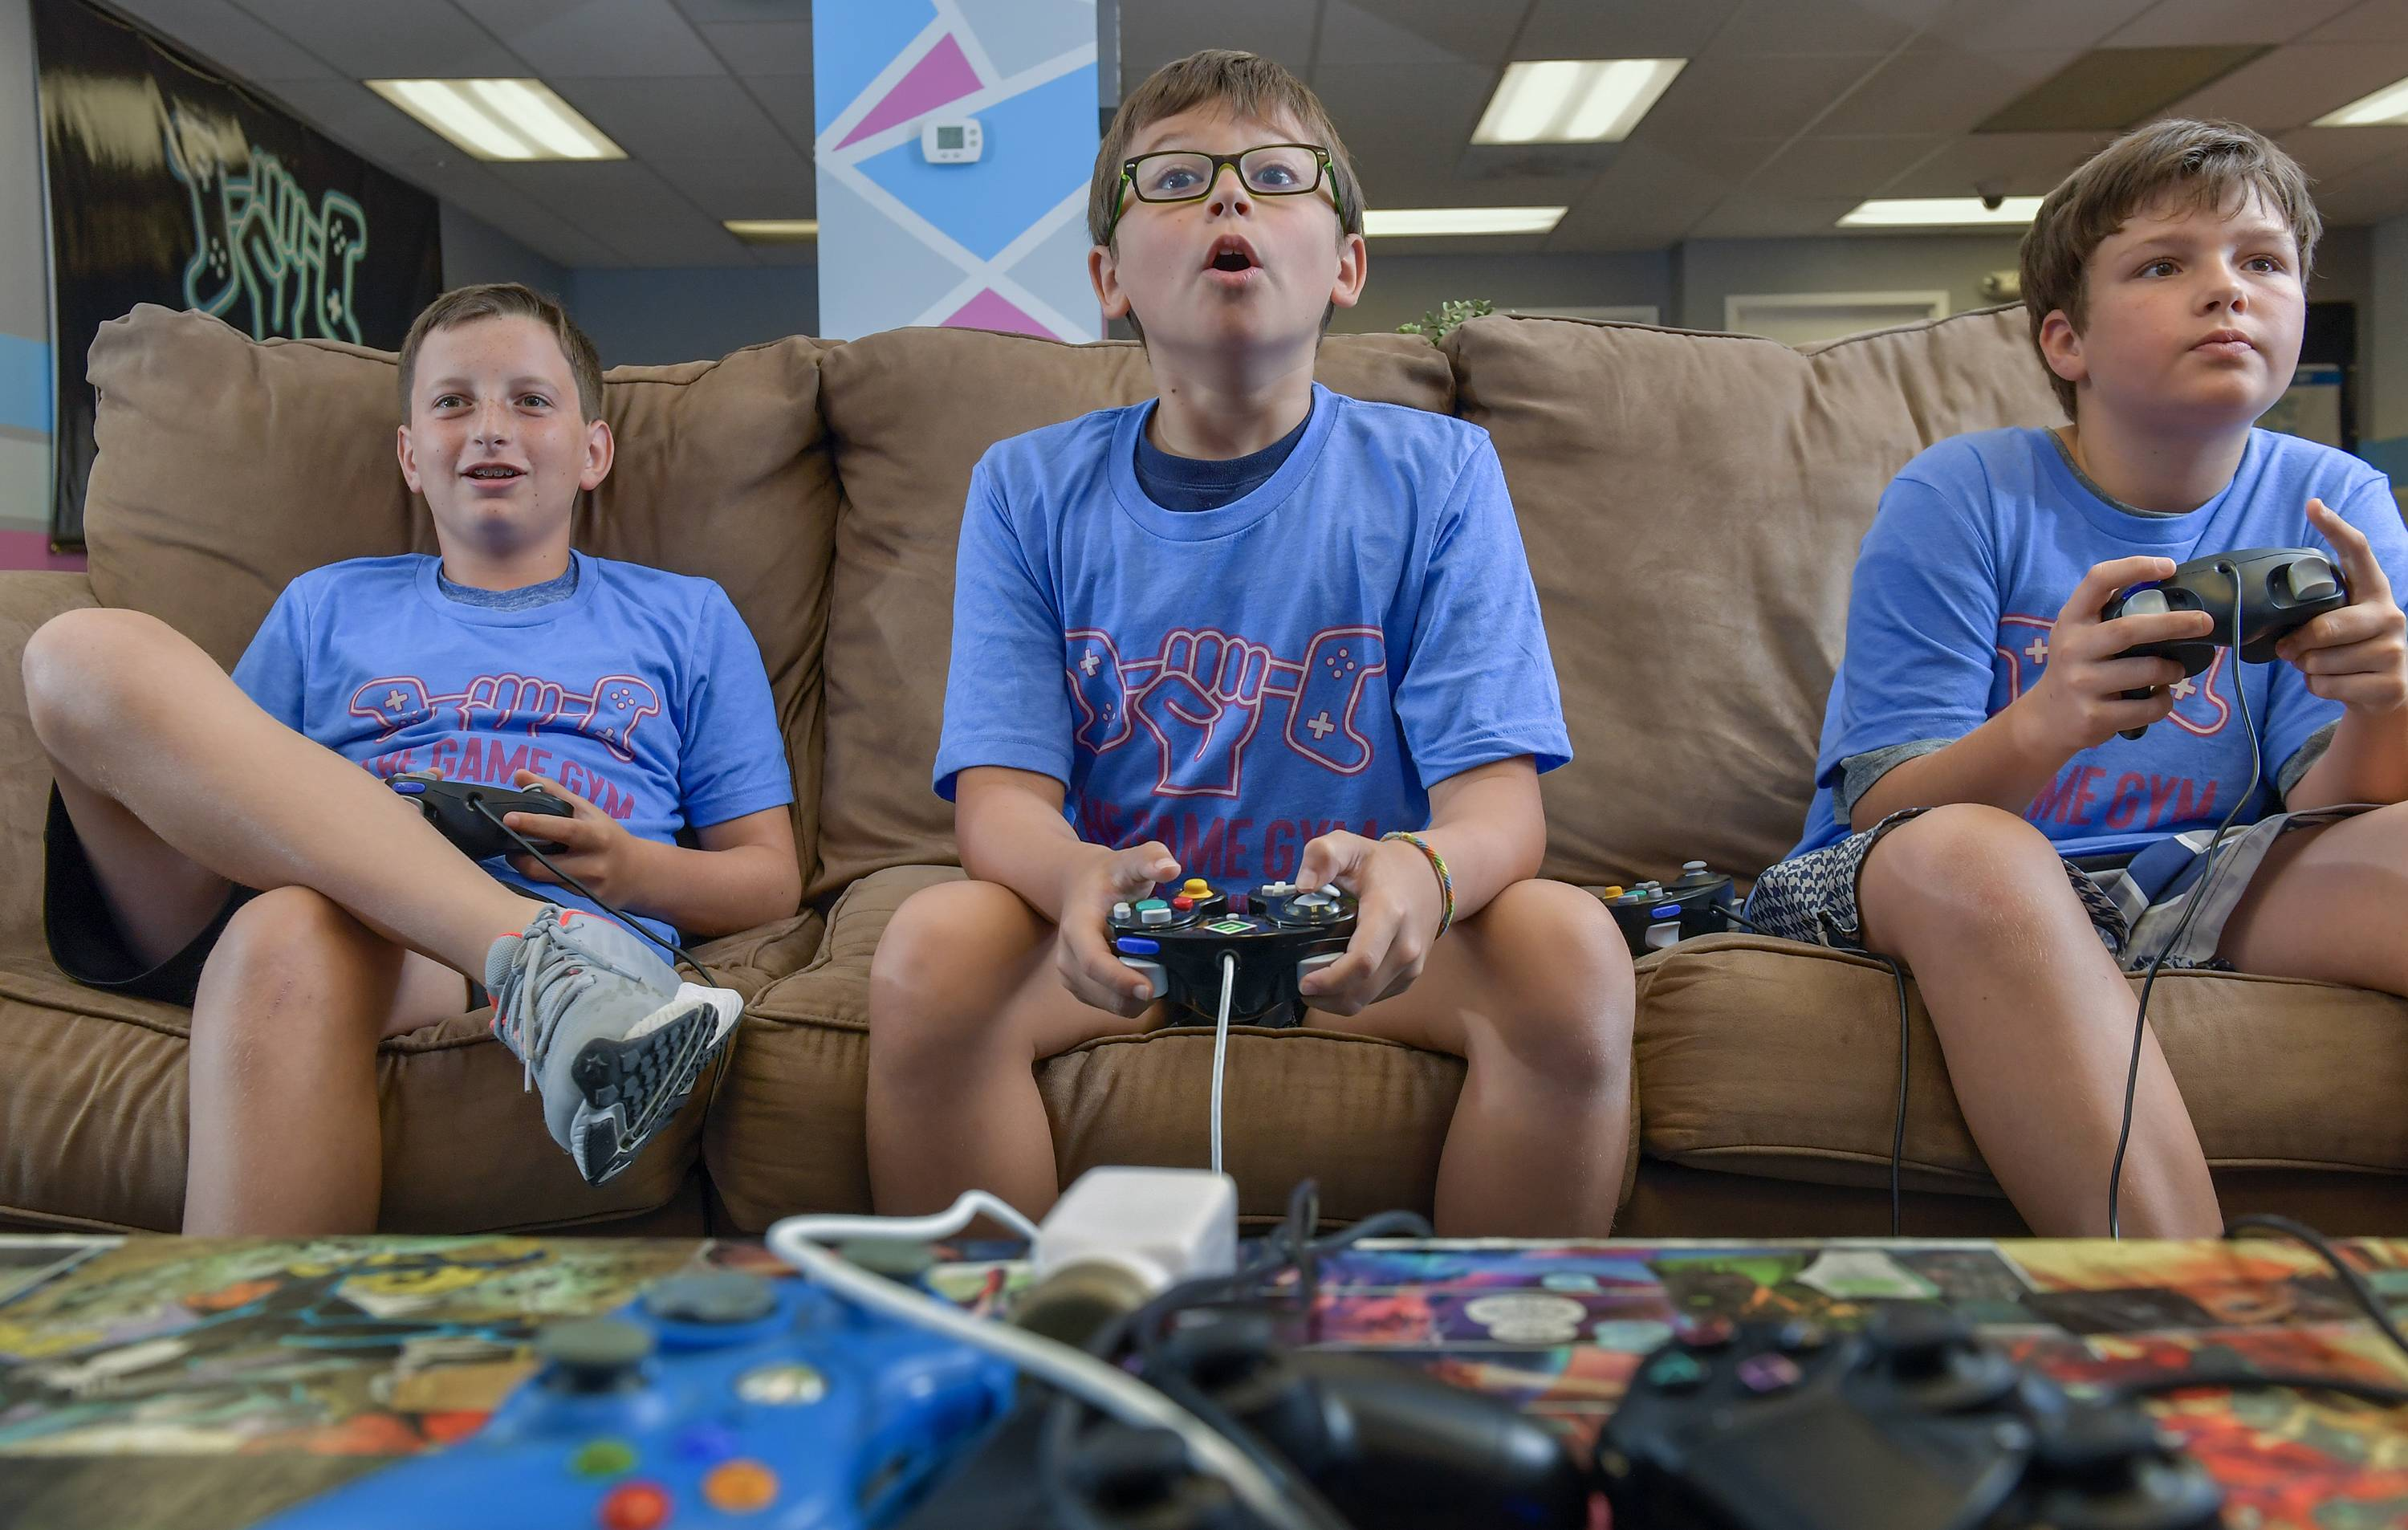 Aiden Keneally, Roman Wright and Benny O'Neill enjoy a game of Super Smash Brothers at a Game Gym camp in Potomac, Md., in late August.